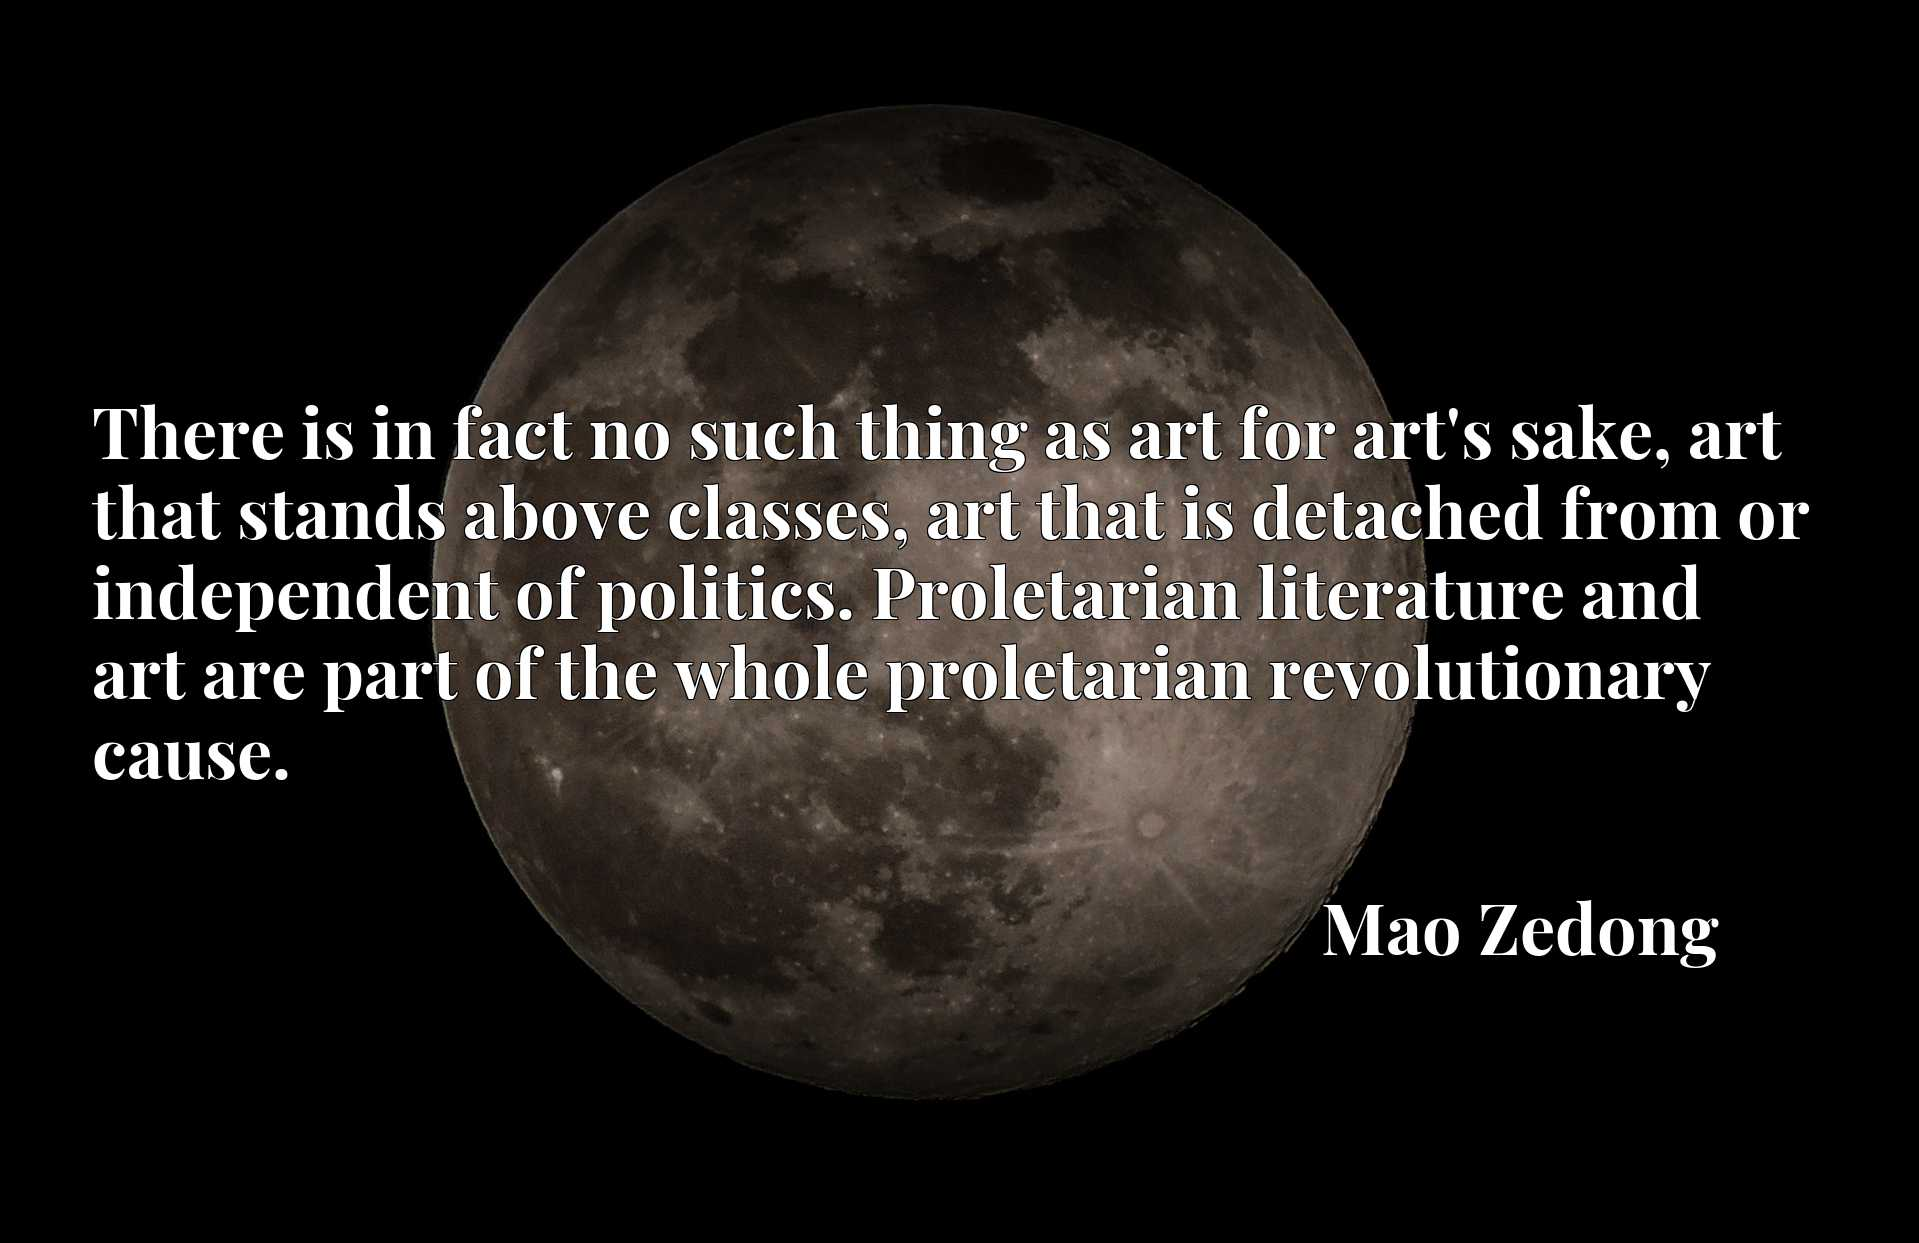 There is in fact no such thing as art for art's sake, art that stands above classes, art that is detached from or independent of politics. Proletarian literature and art are part of the whole proletarian revolutionary cause.